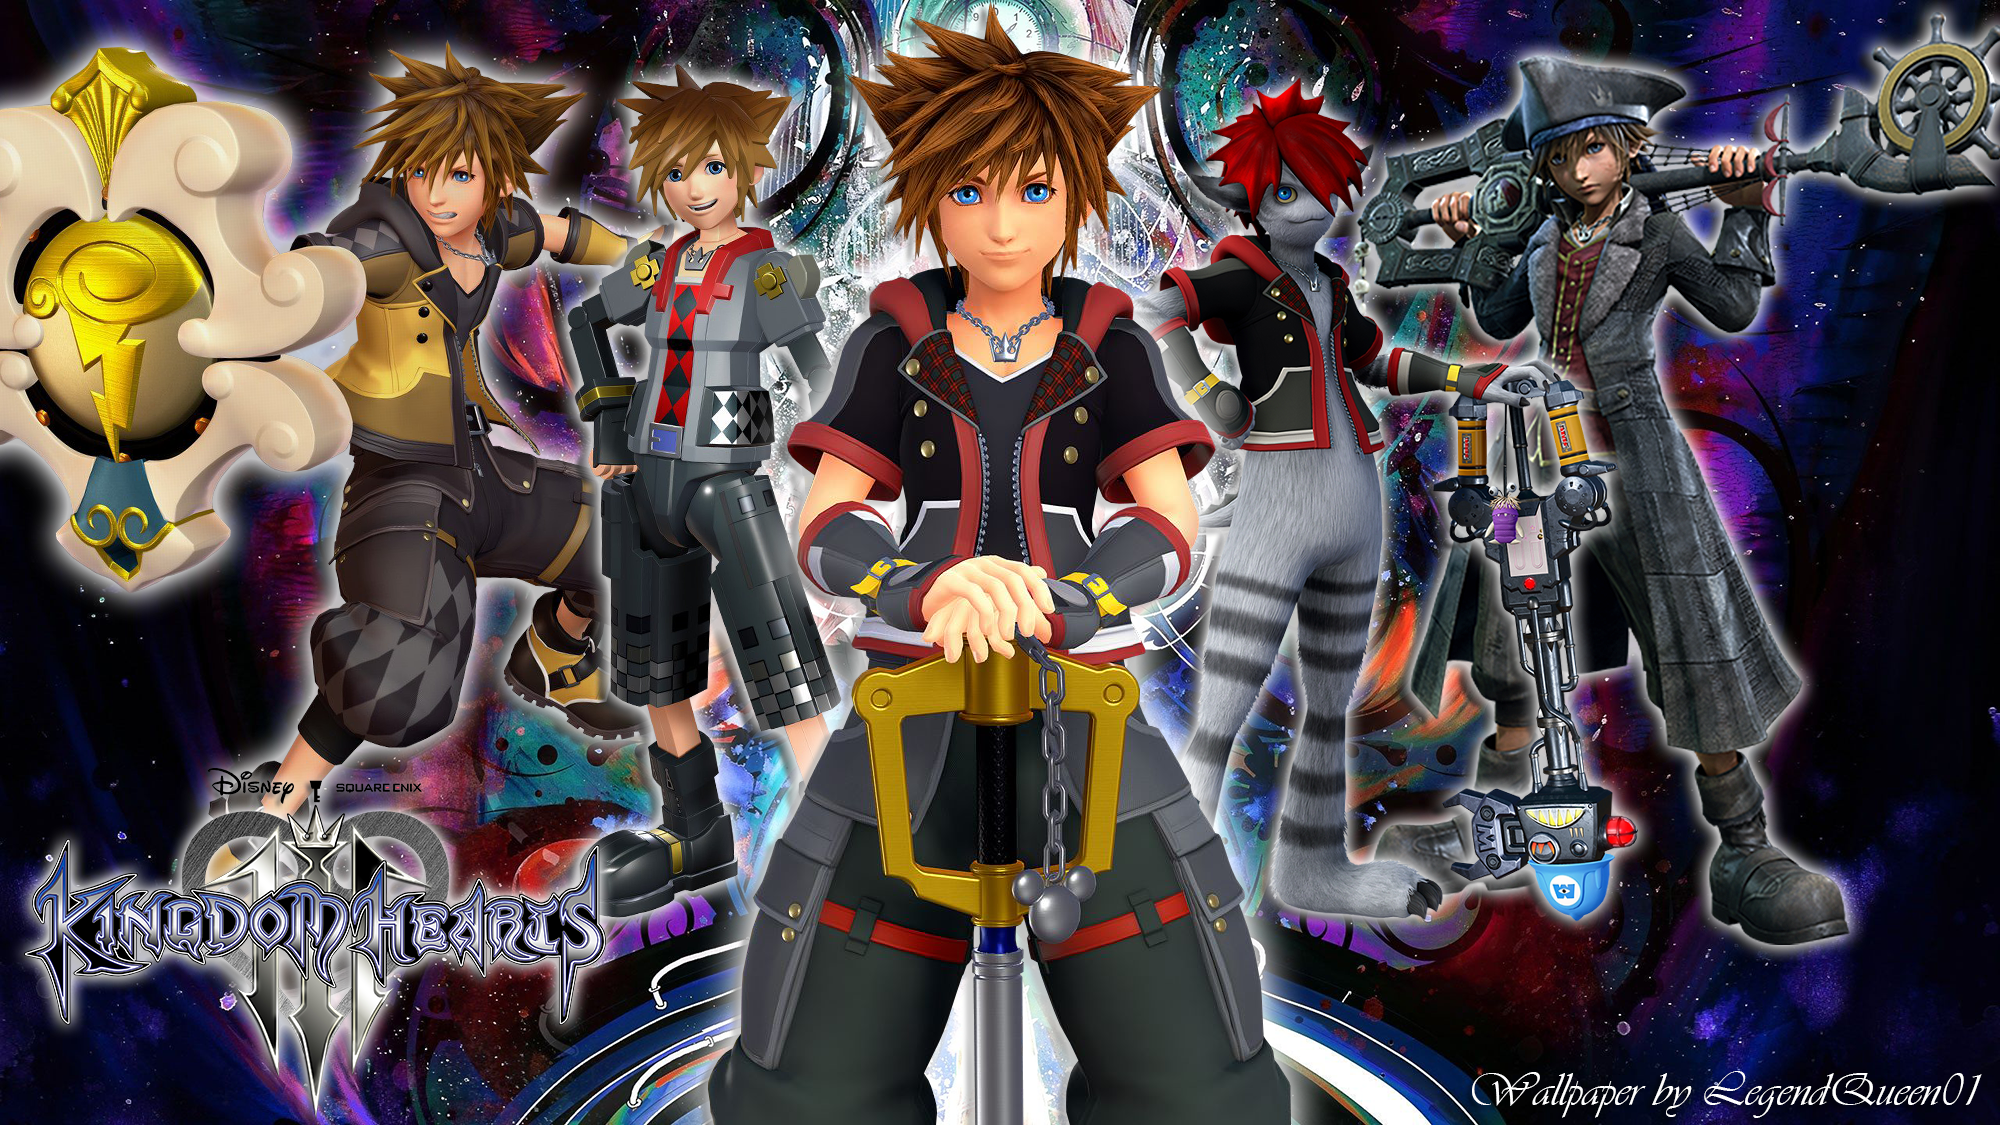 Wallpaper Sora Kingdom Hearts 3 by LegendQueen01 on DeviantArt